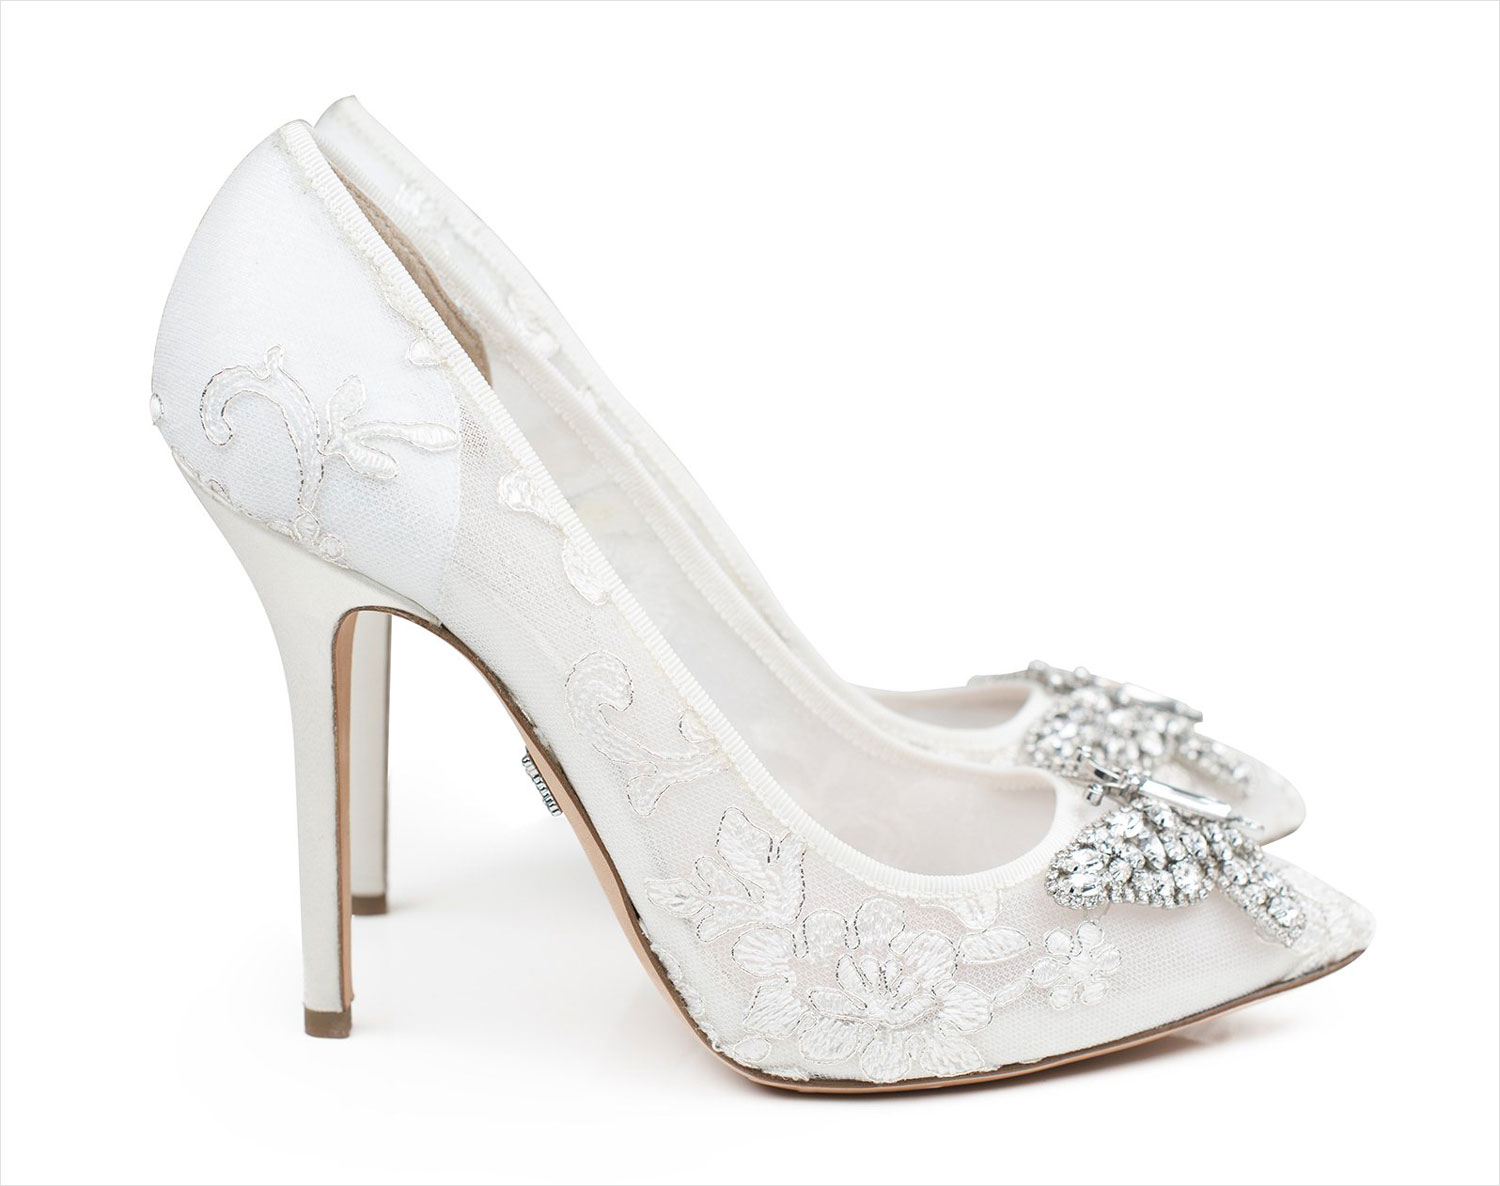 Aruna Seth Farfalla ivory lace pointed toe pump white wedding shoes heels